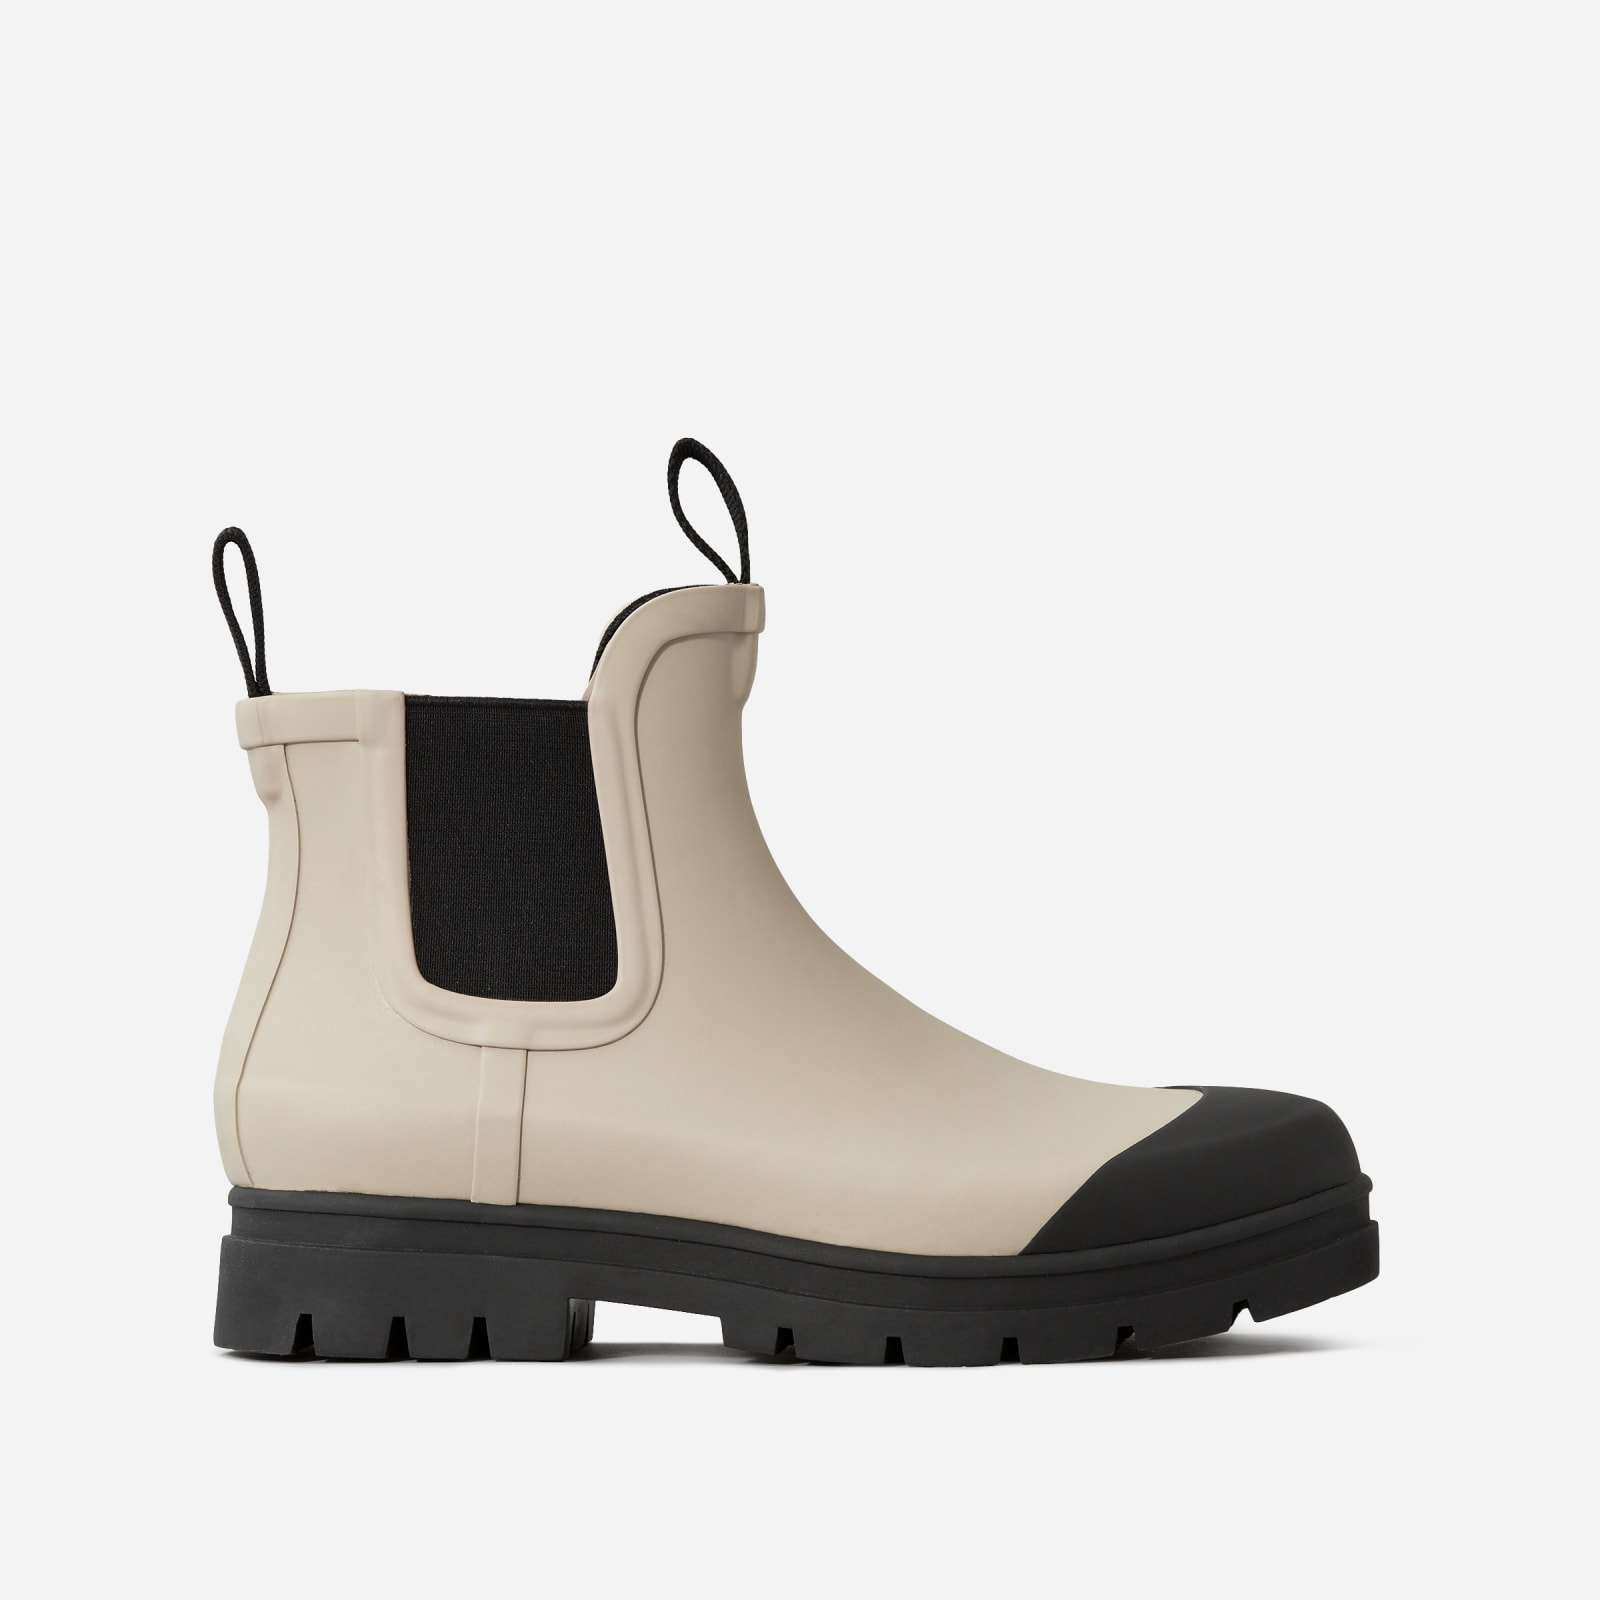 rain boot by everlane in stone, size 5